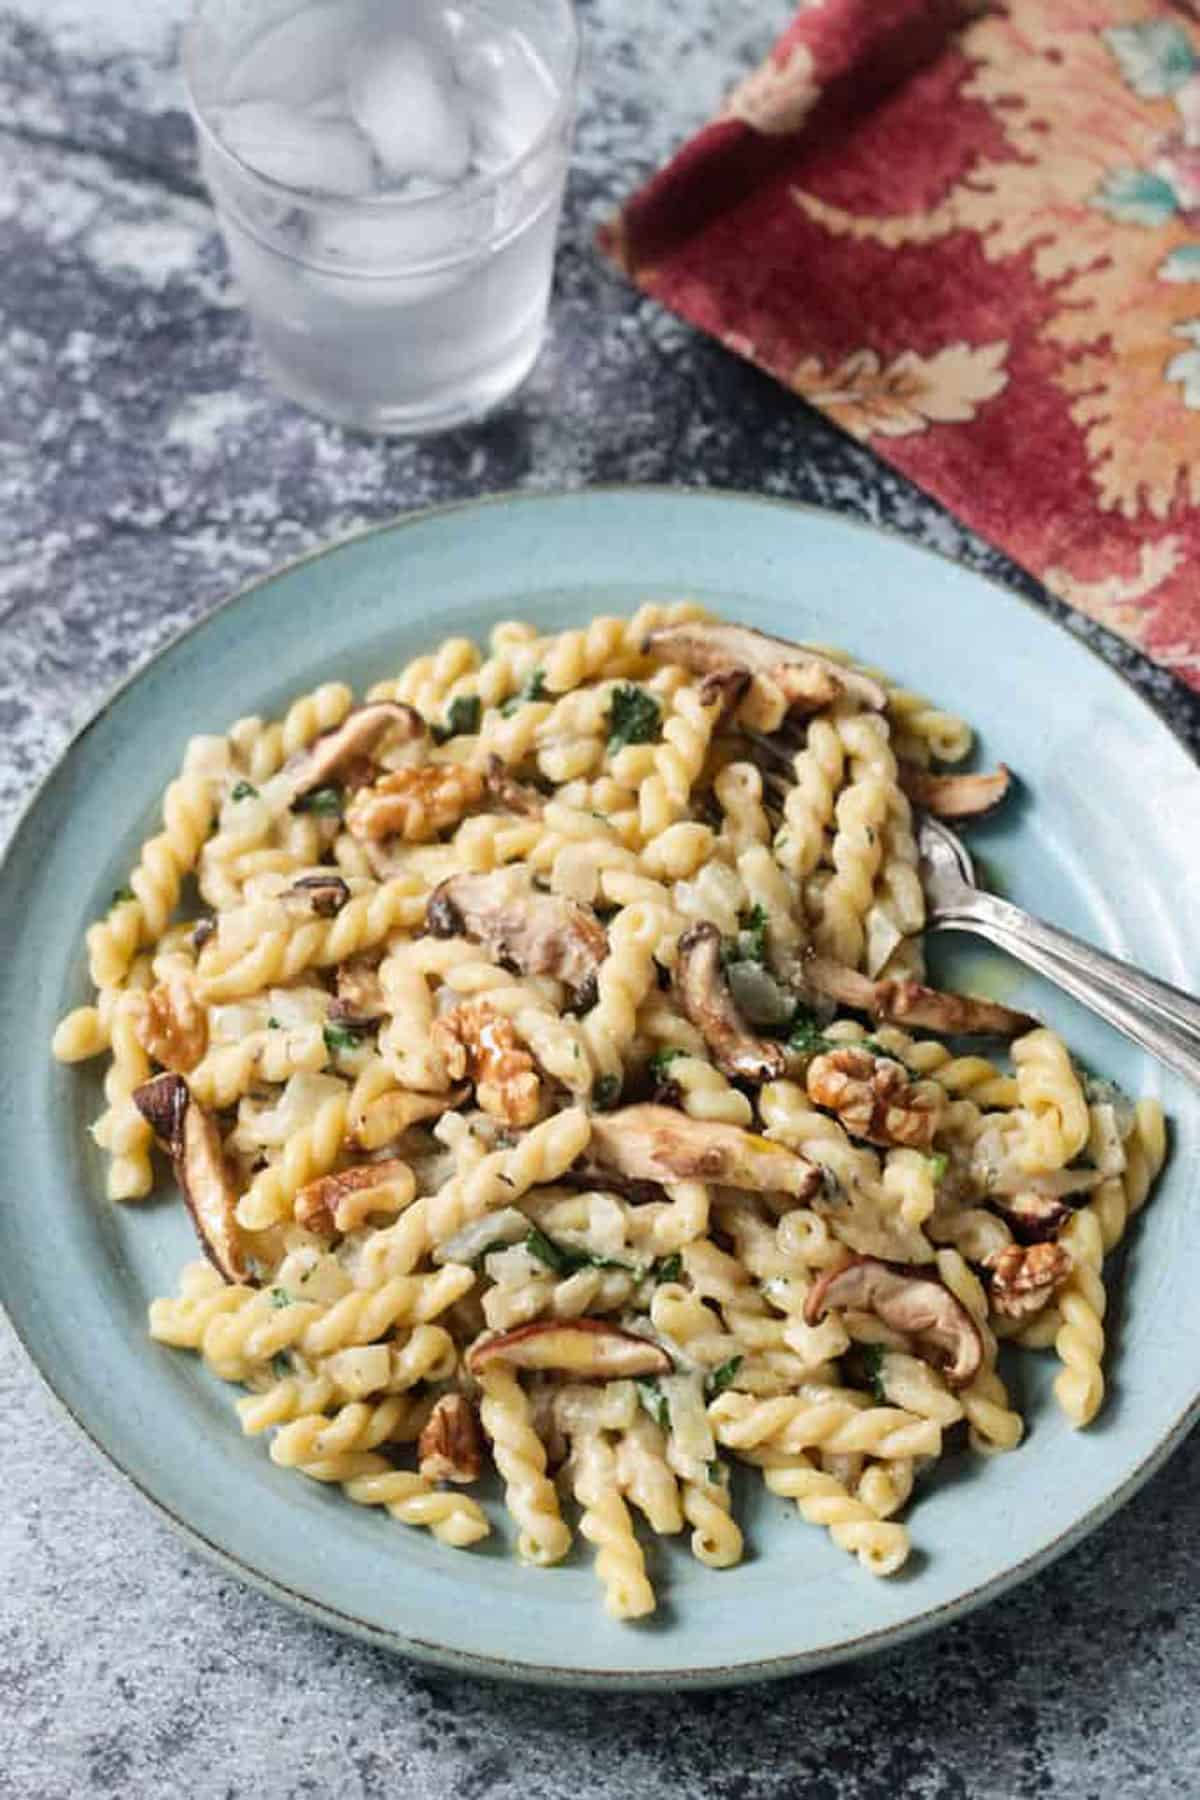 Gemelli pasta with mushrooms and walnuts on a blue plate with two forks